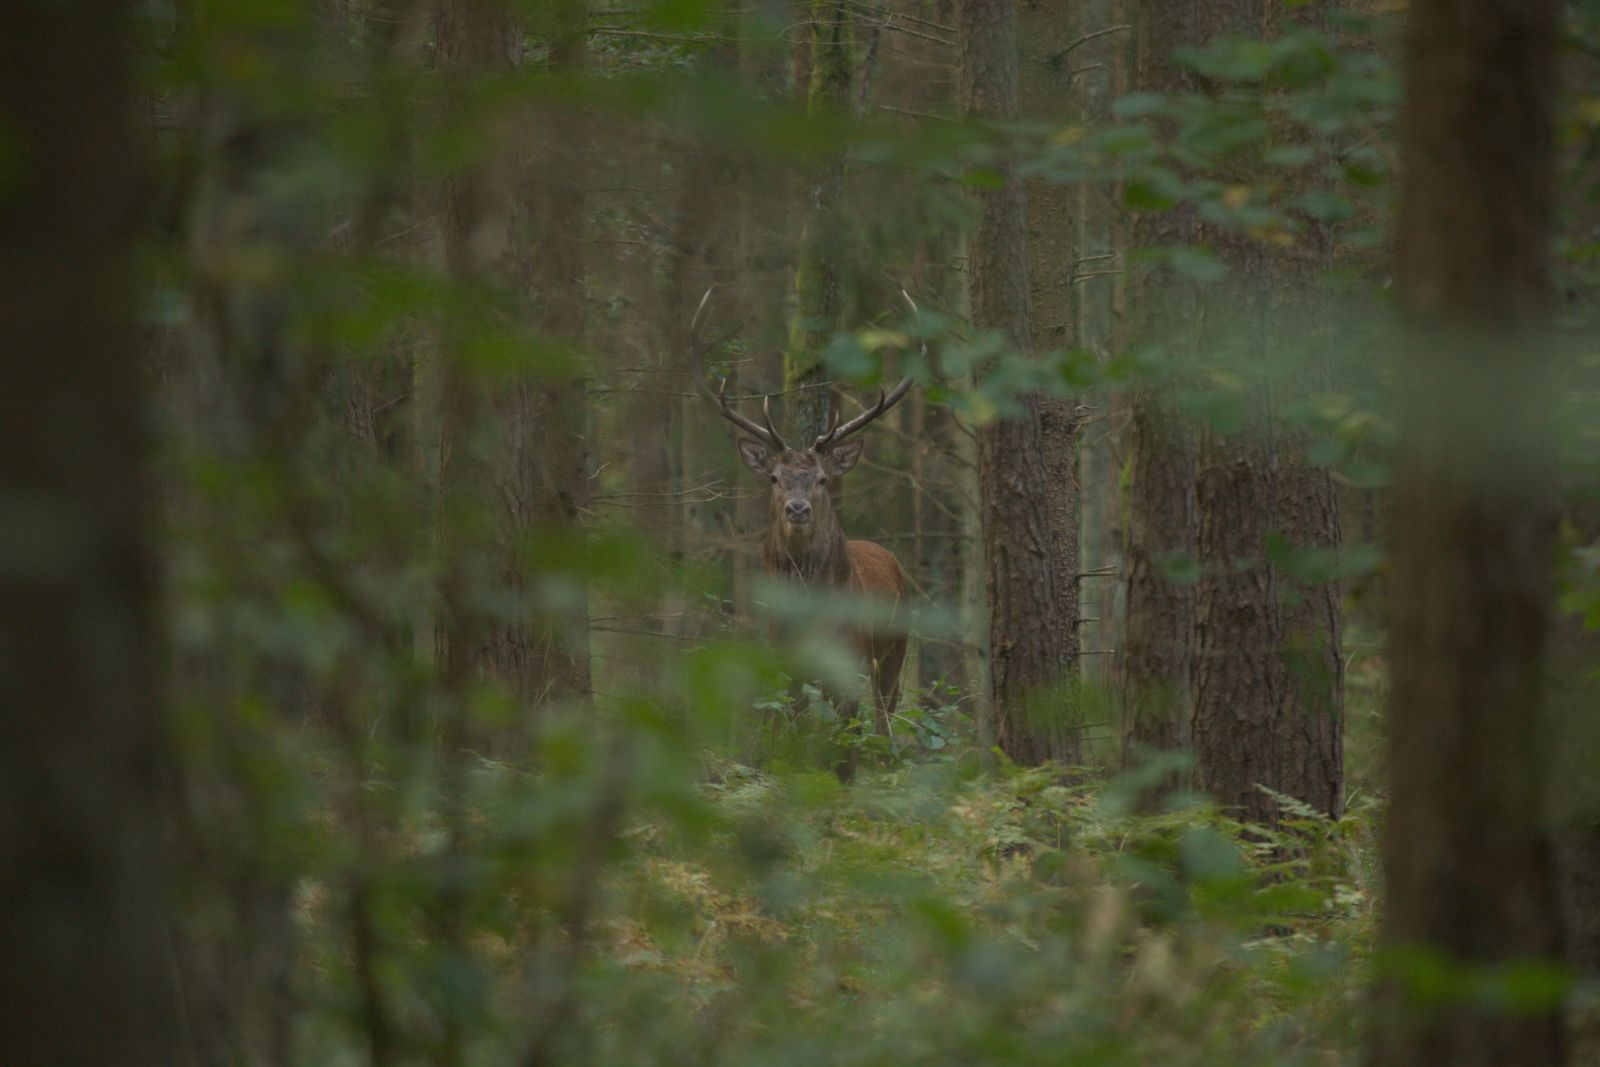 Hunting red deer in Poland